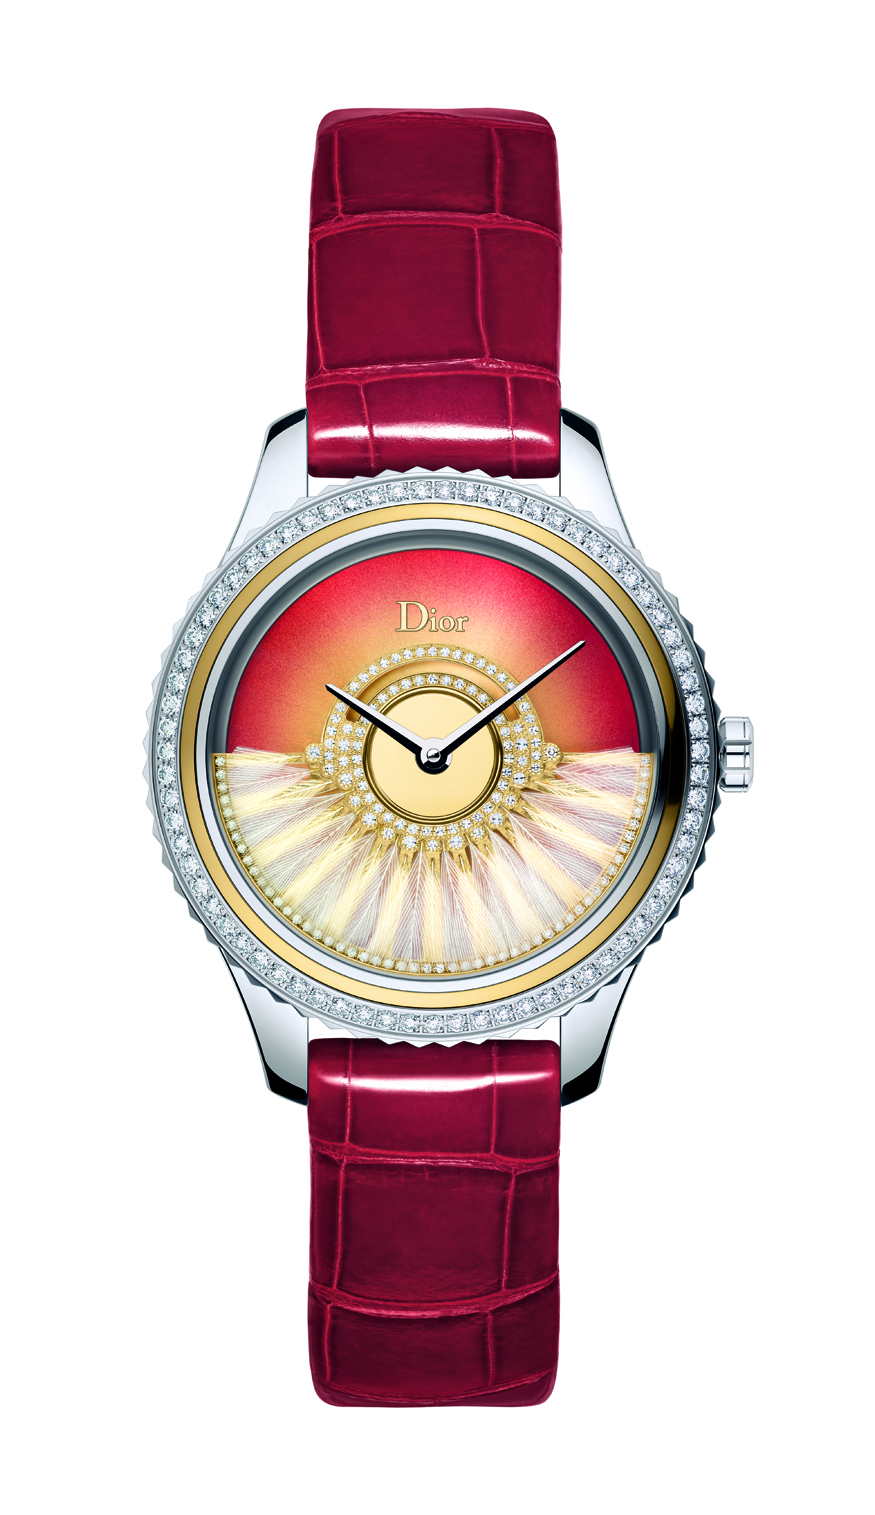 cd153b21a001_v0_dior-viii-grand-bal-plume-chinese-new-year-36mm-2